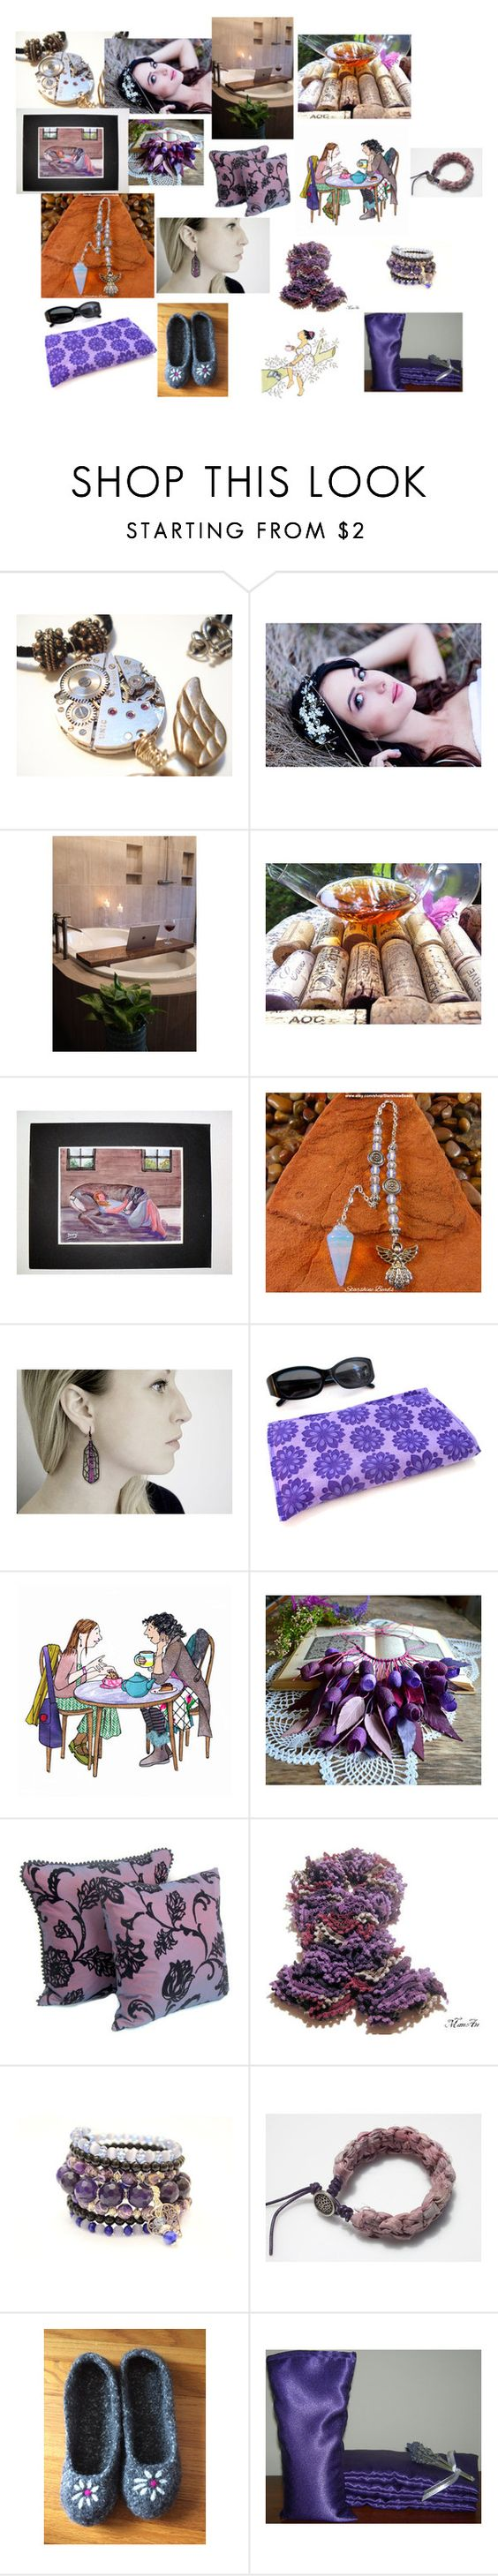 """""""Time To Relax"""" by beachdawn ❤ liked on Polyvore"""